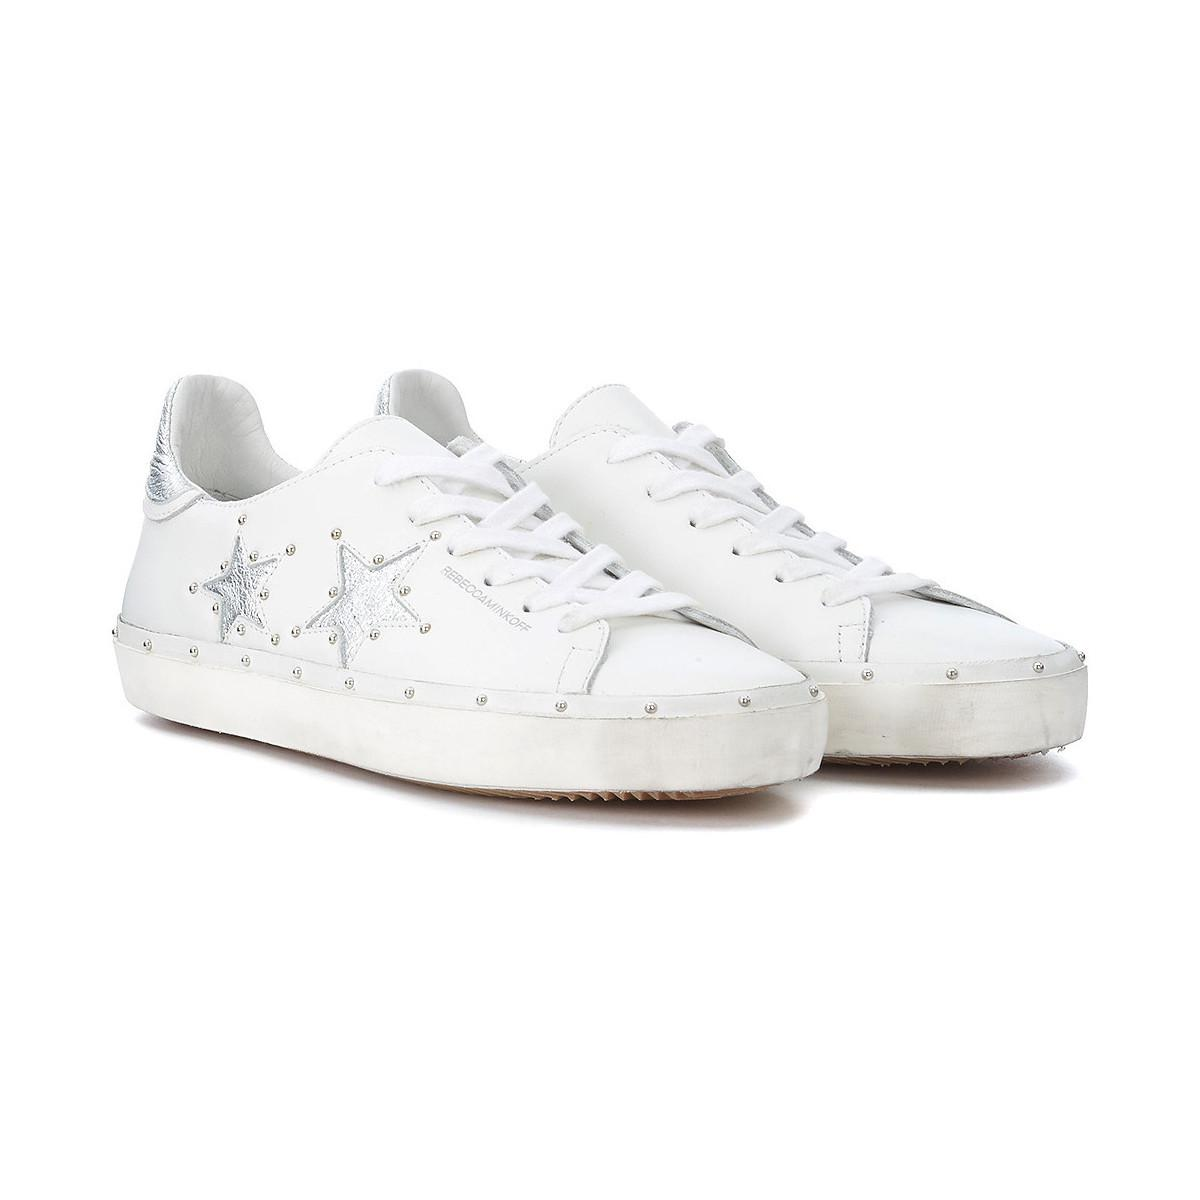 Rebecca Minkoff Michell White And Silver Leather Sneaker With Studs ... 91e1293b897